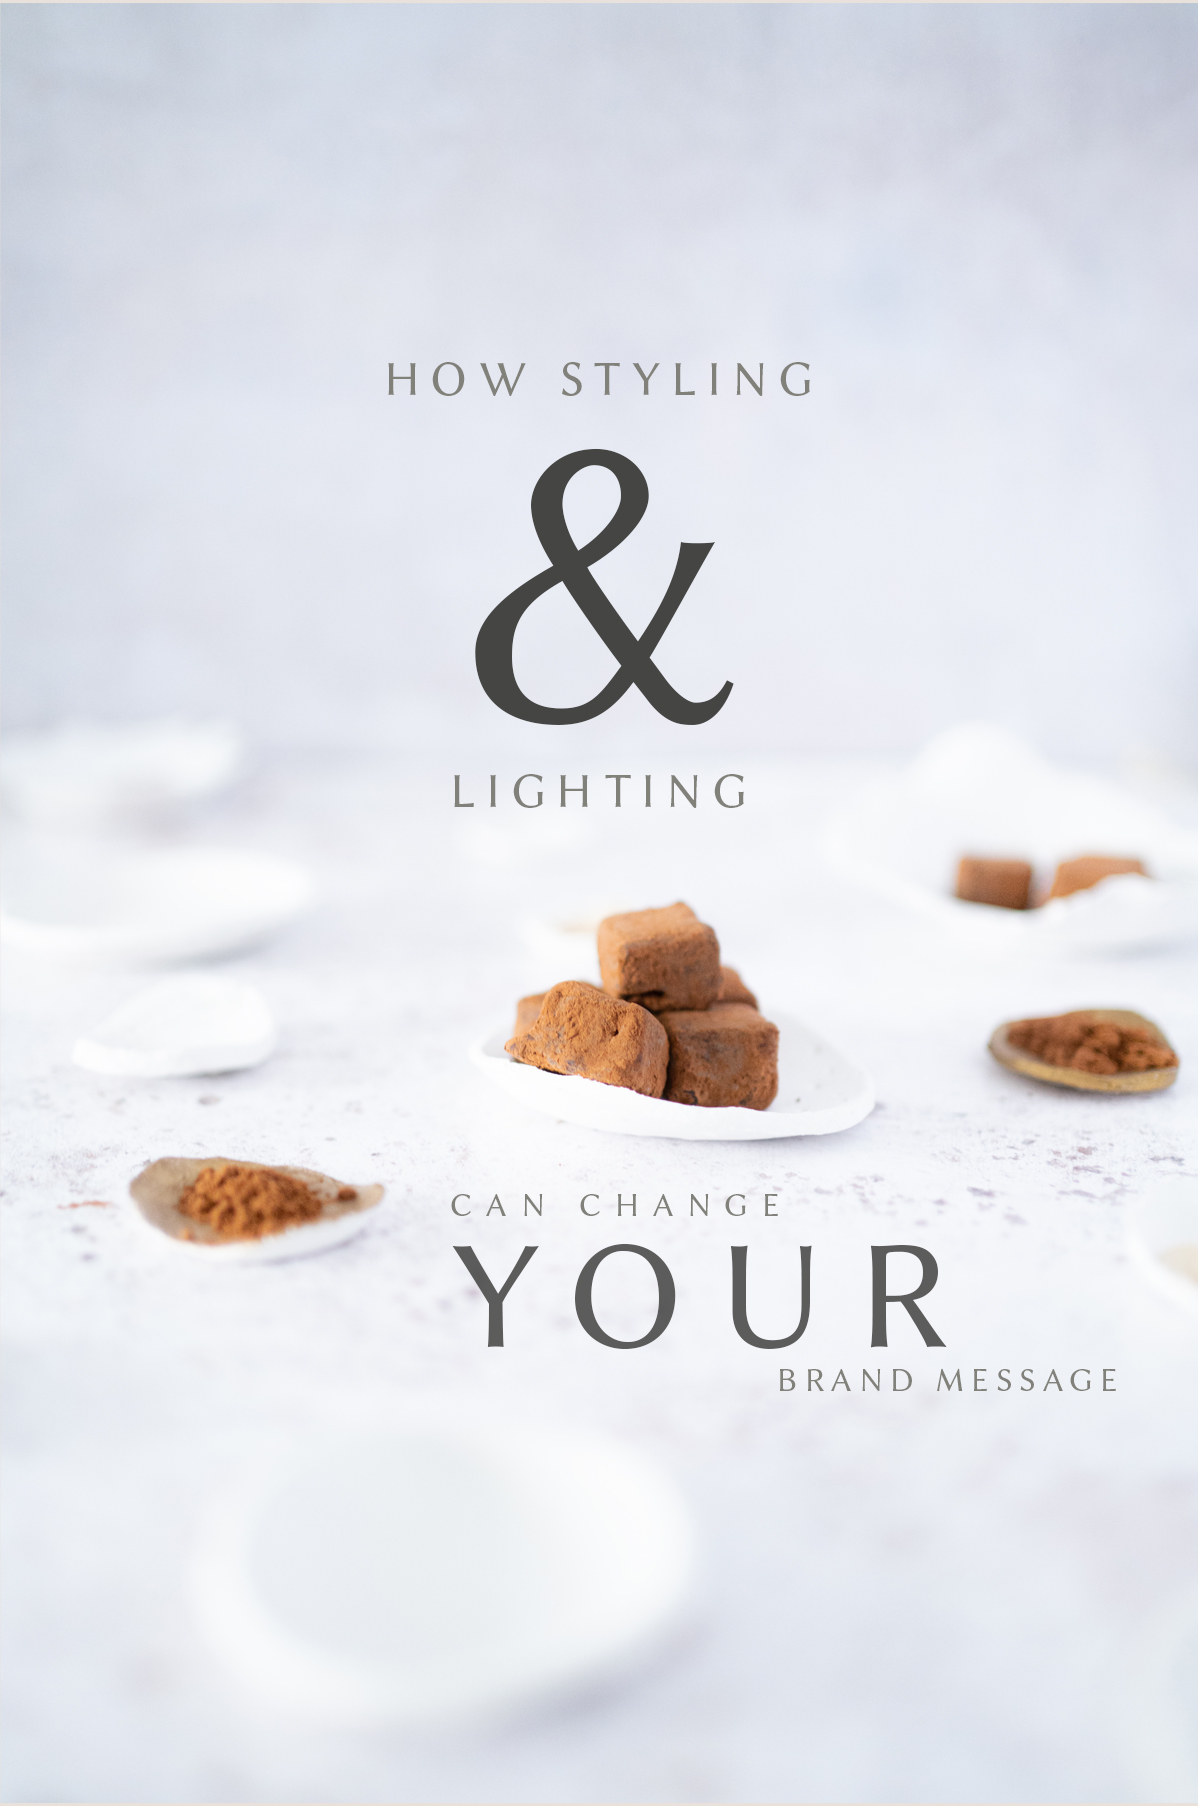 how styling and lighting can change your brand message